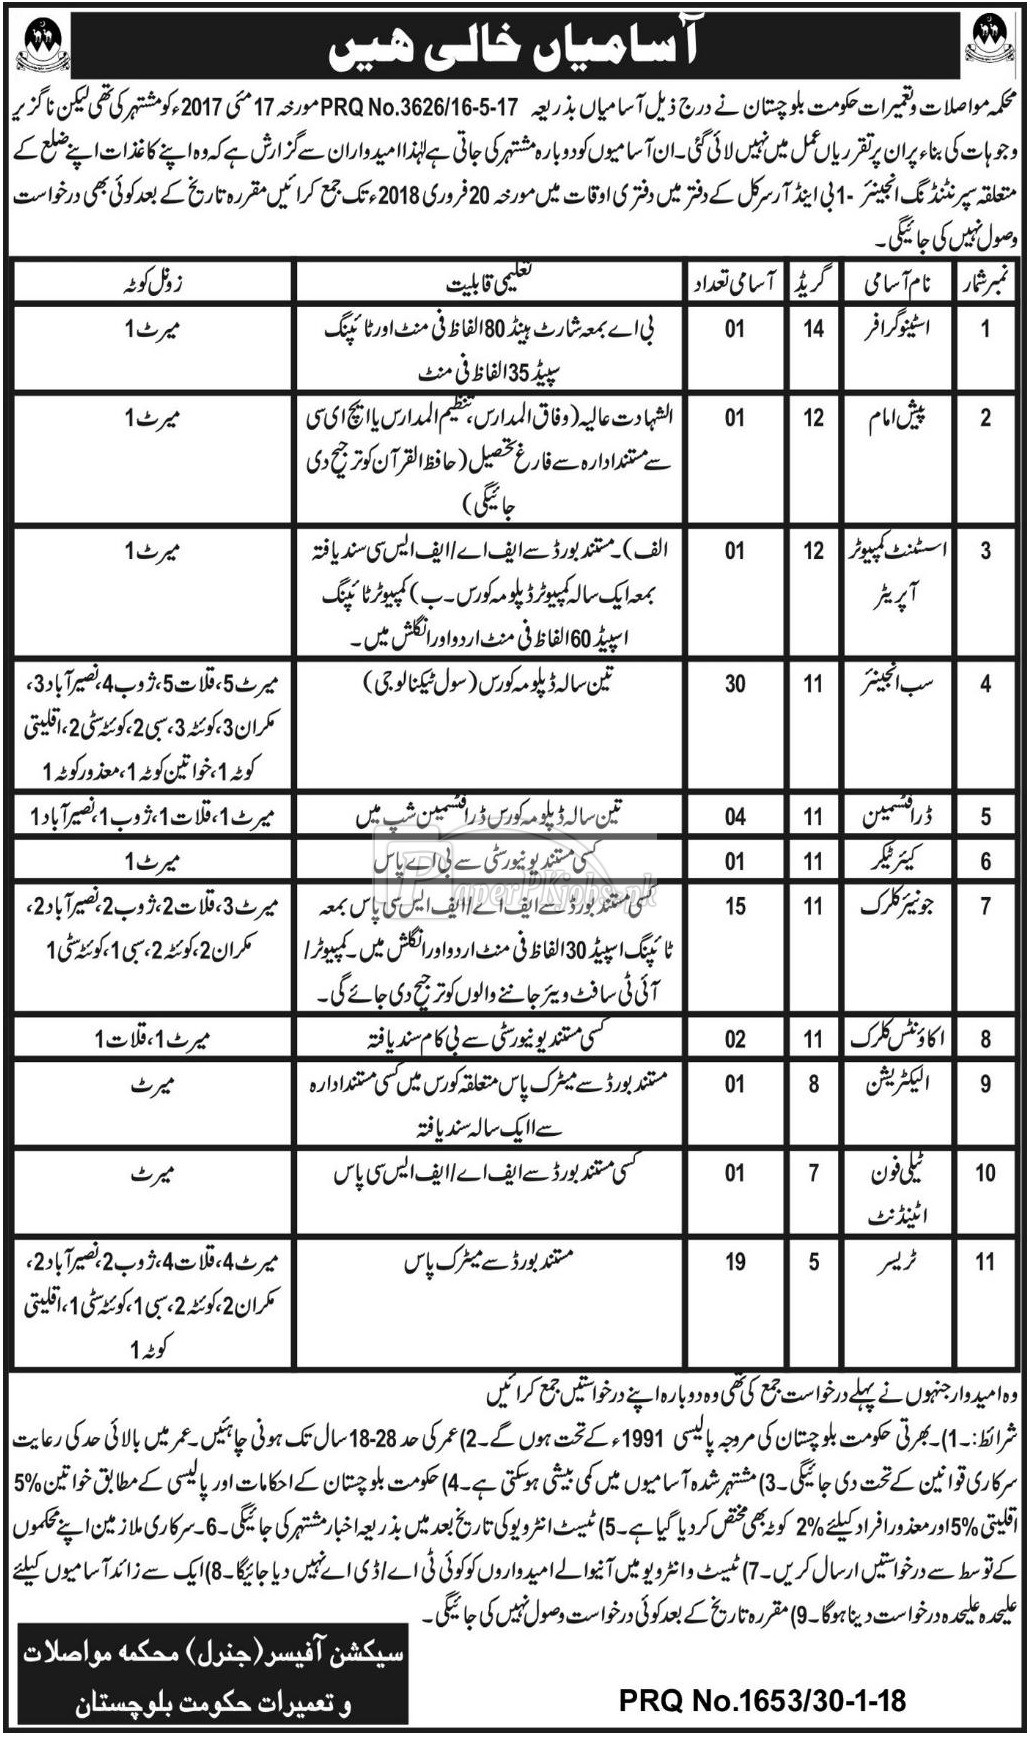 Communication & Works Department Balochistan Jobs 2018